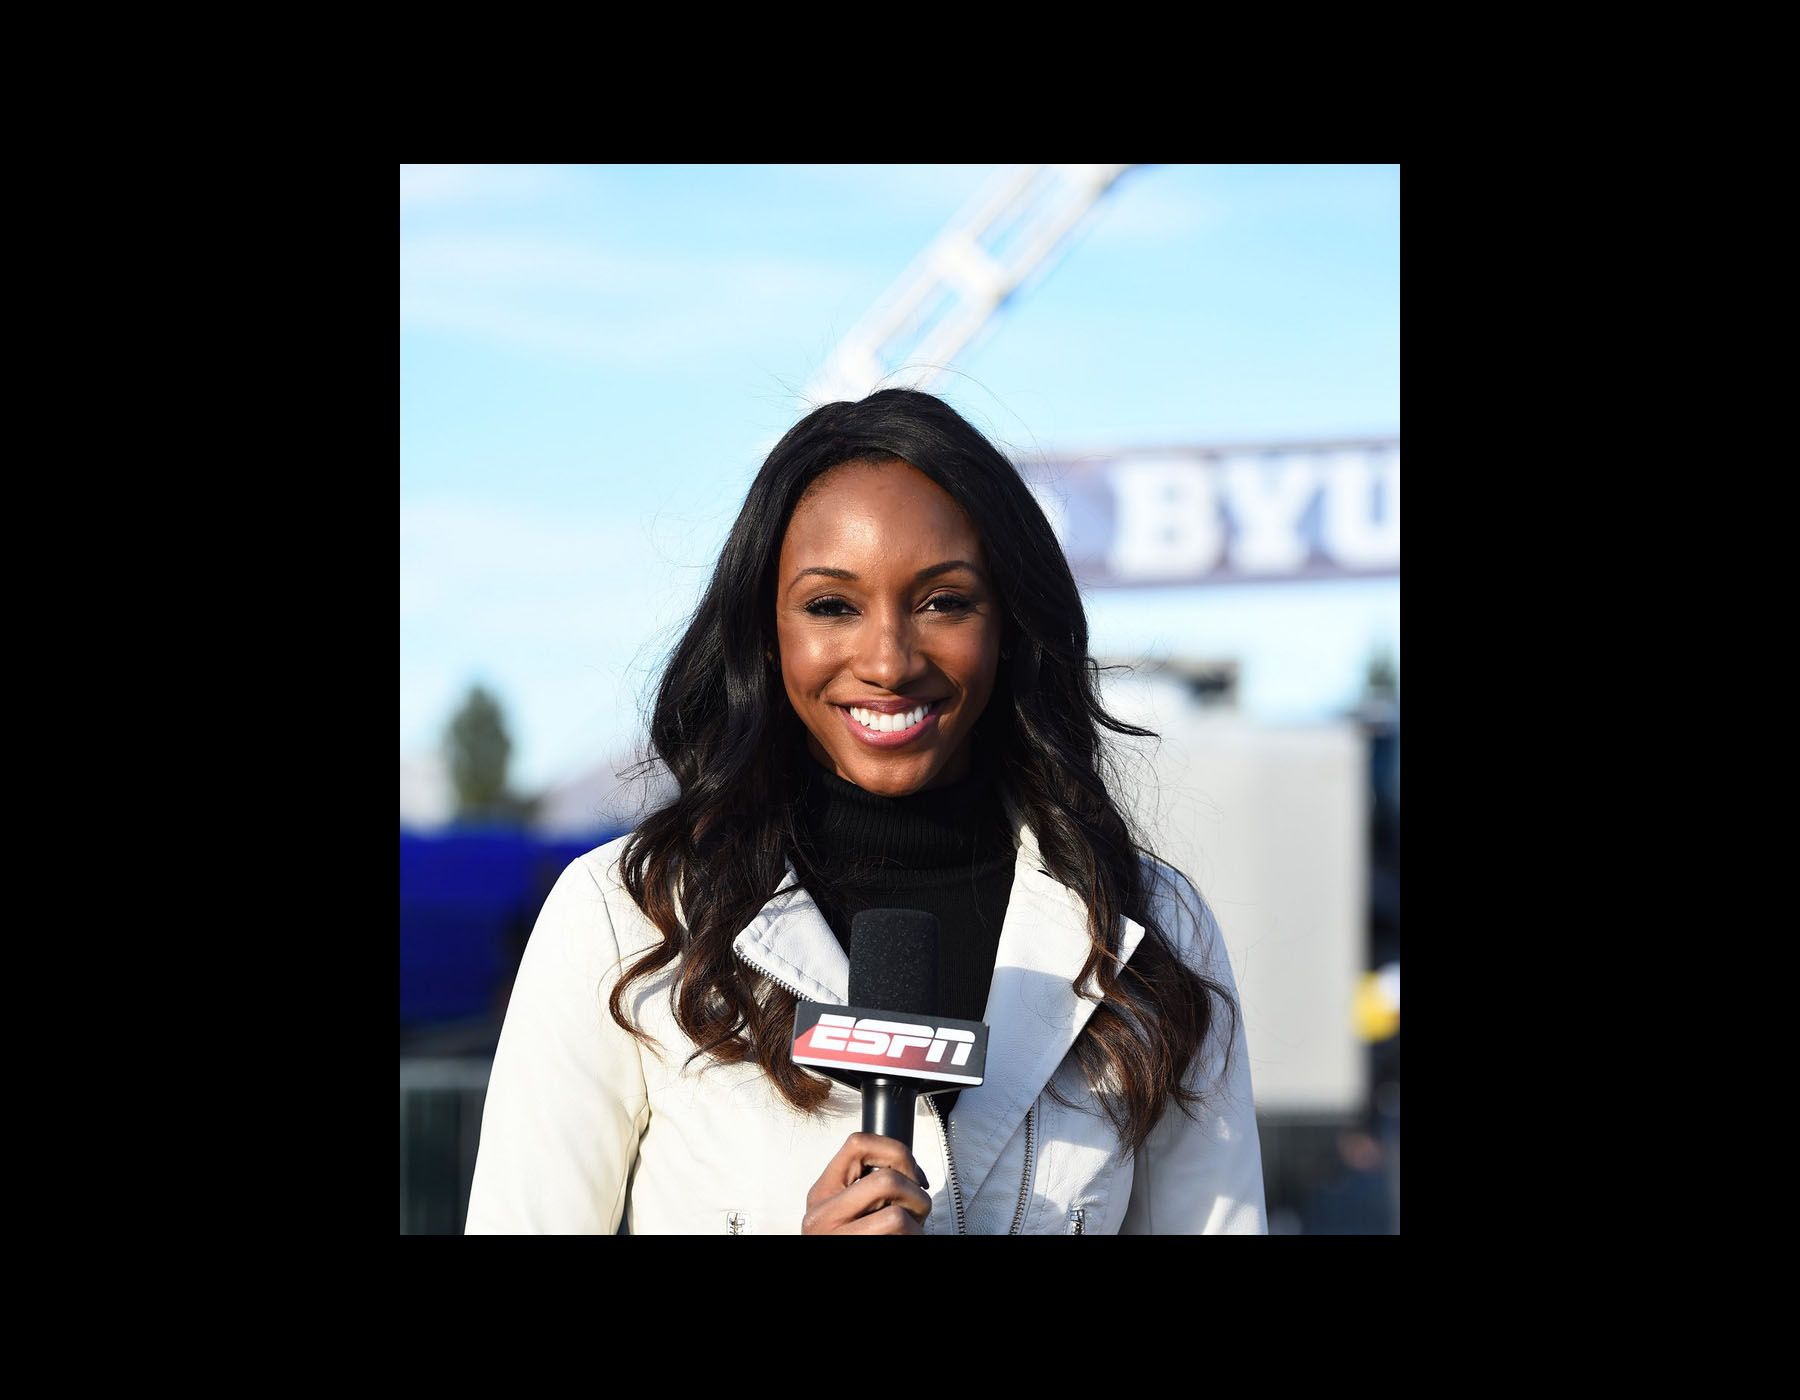 Espn Has Filled A Key Position For The Upcoming College Football Season Maria Taylor Current Espn And Sec Netwo Maria Taylor Maria Taylor Espn Athletic Women